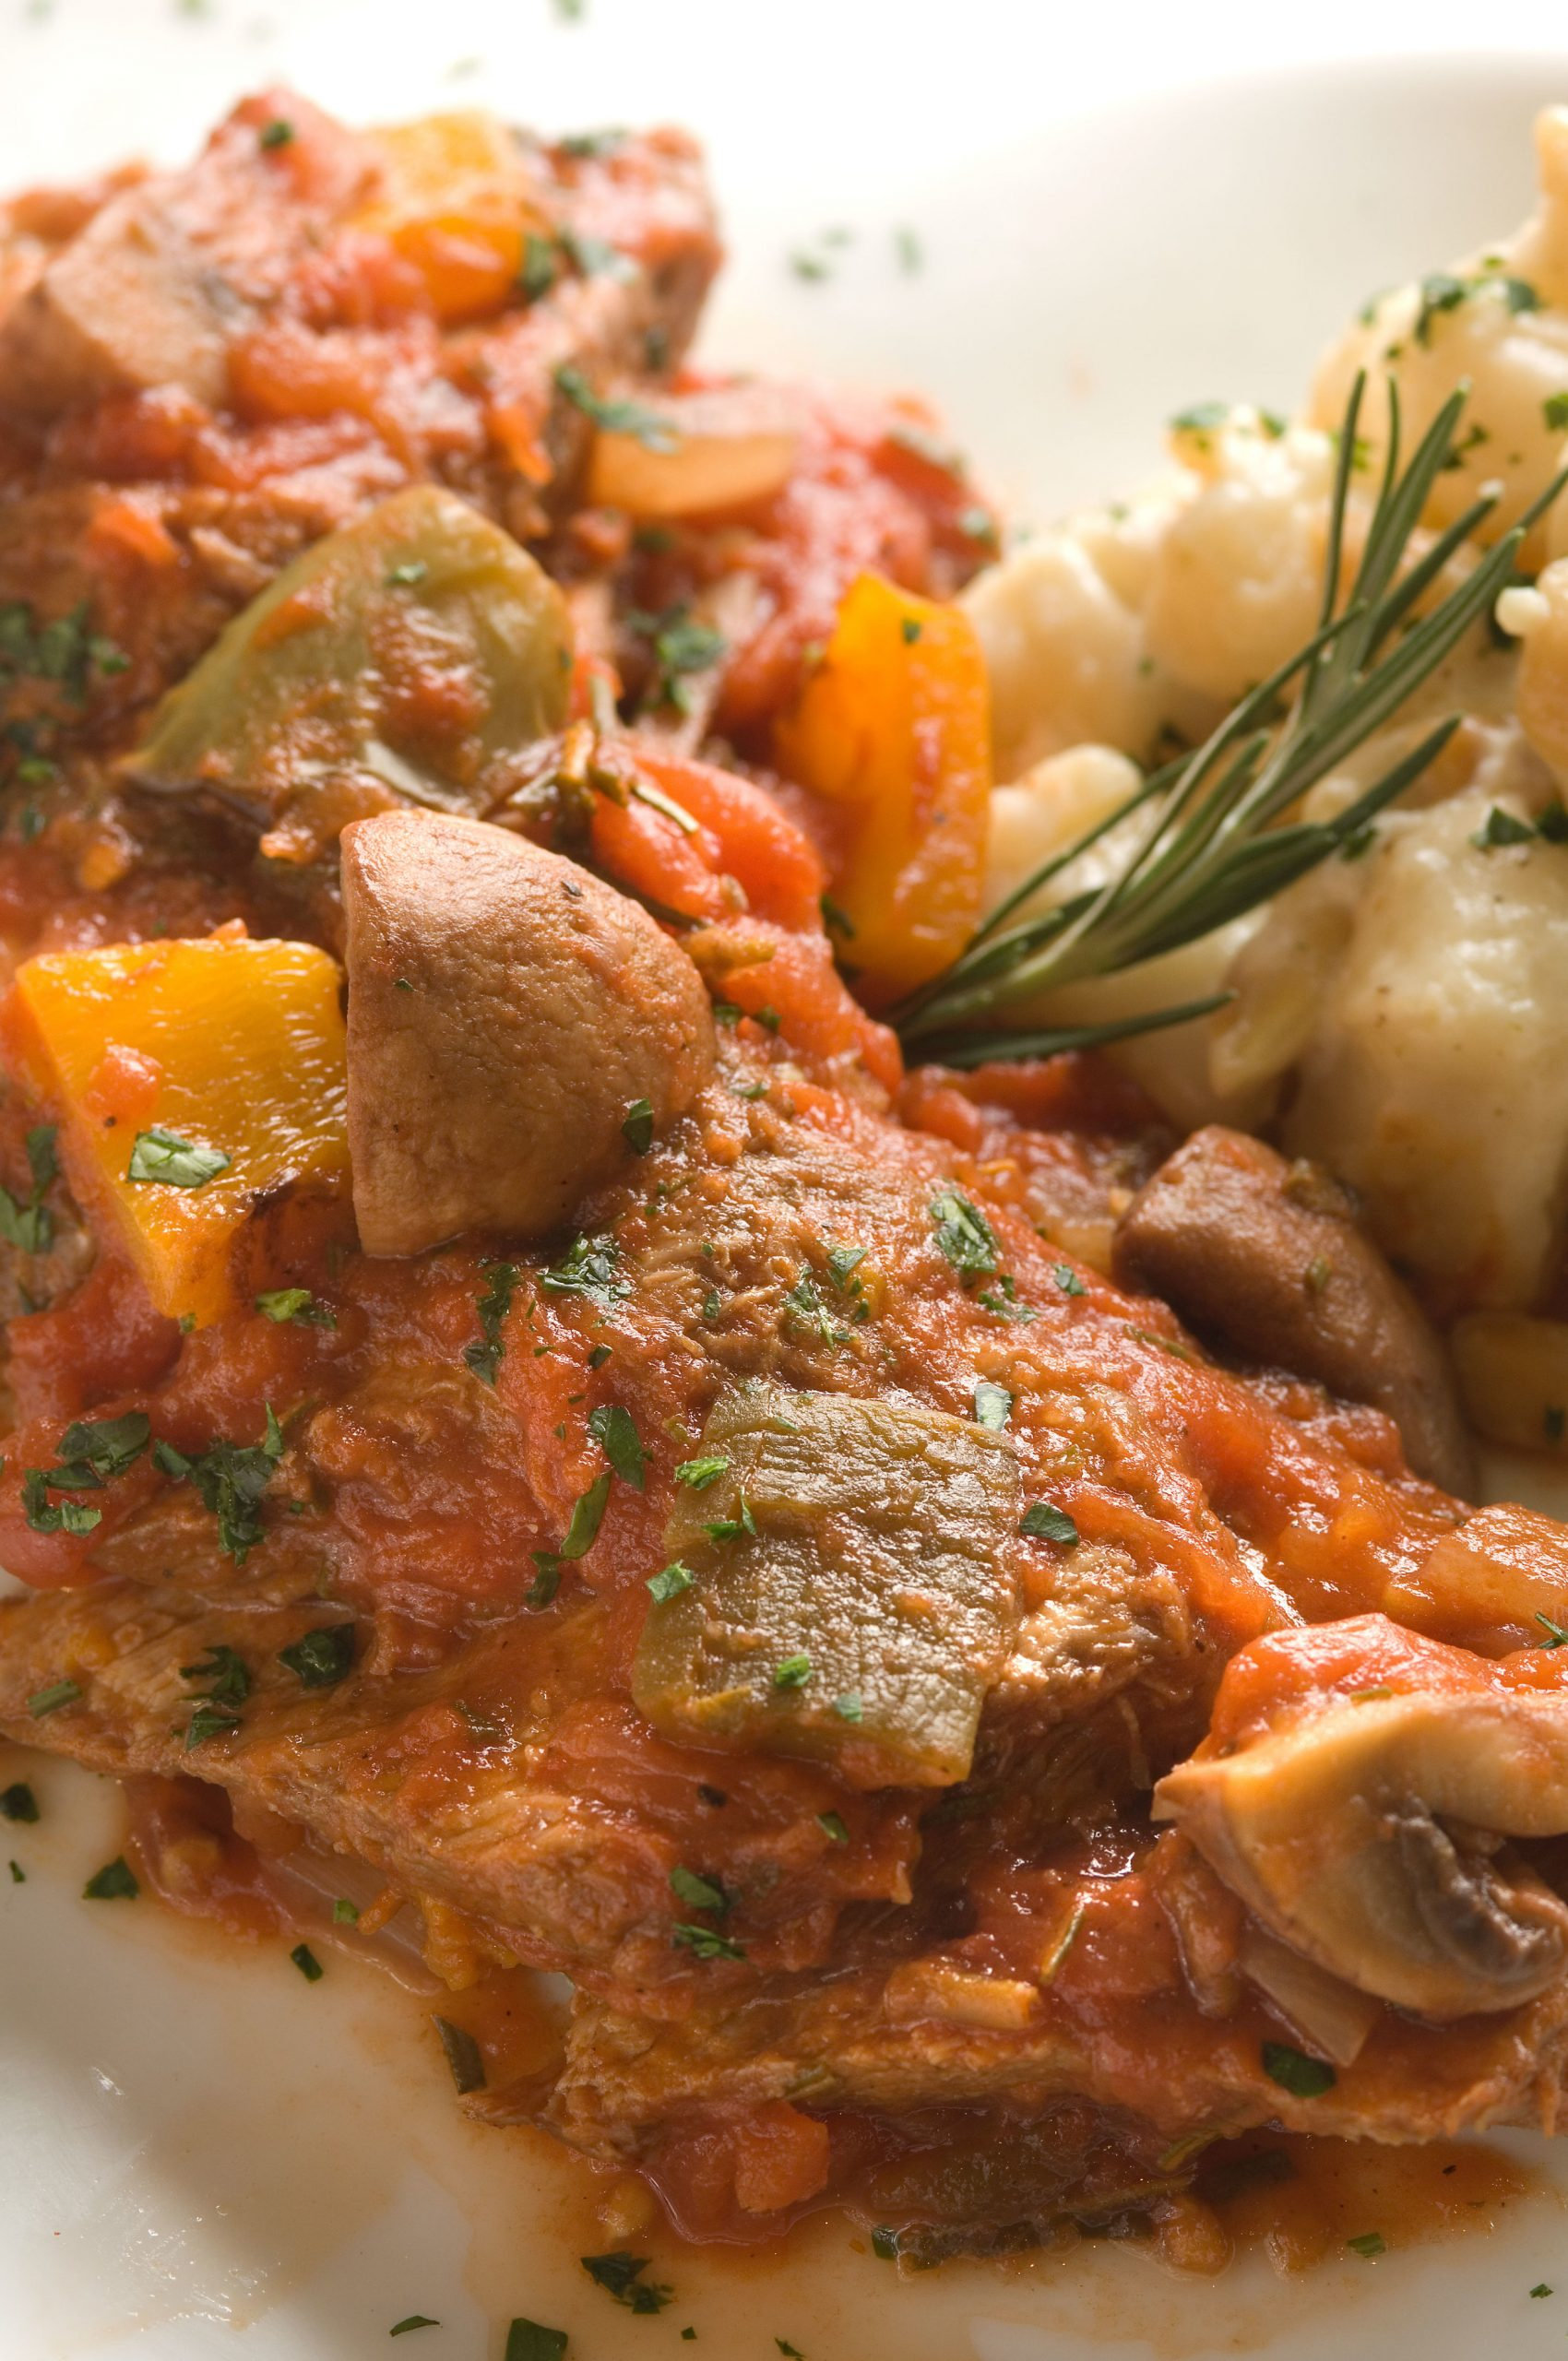 Braised Veal Cacciatore with Spicy Almond and Goat Cheese